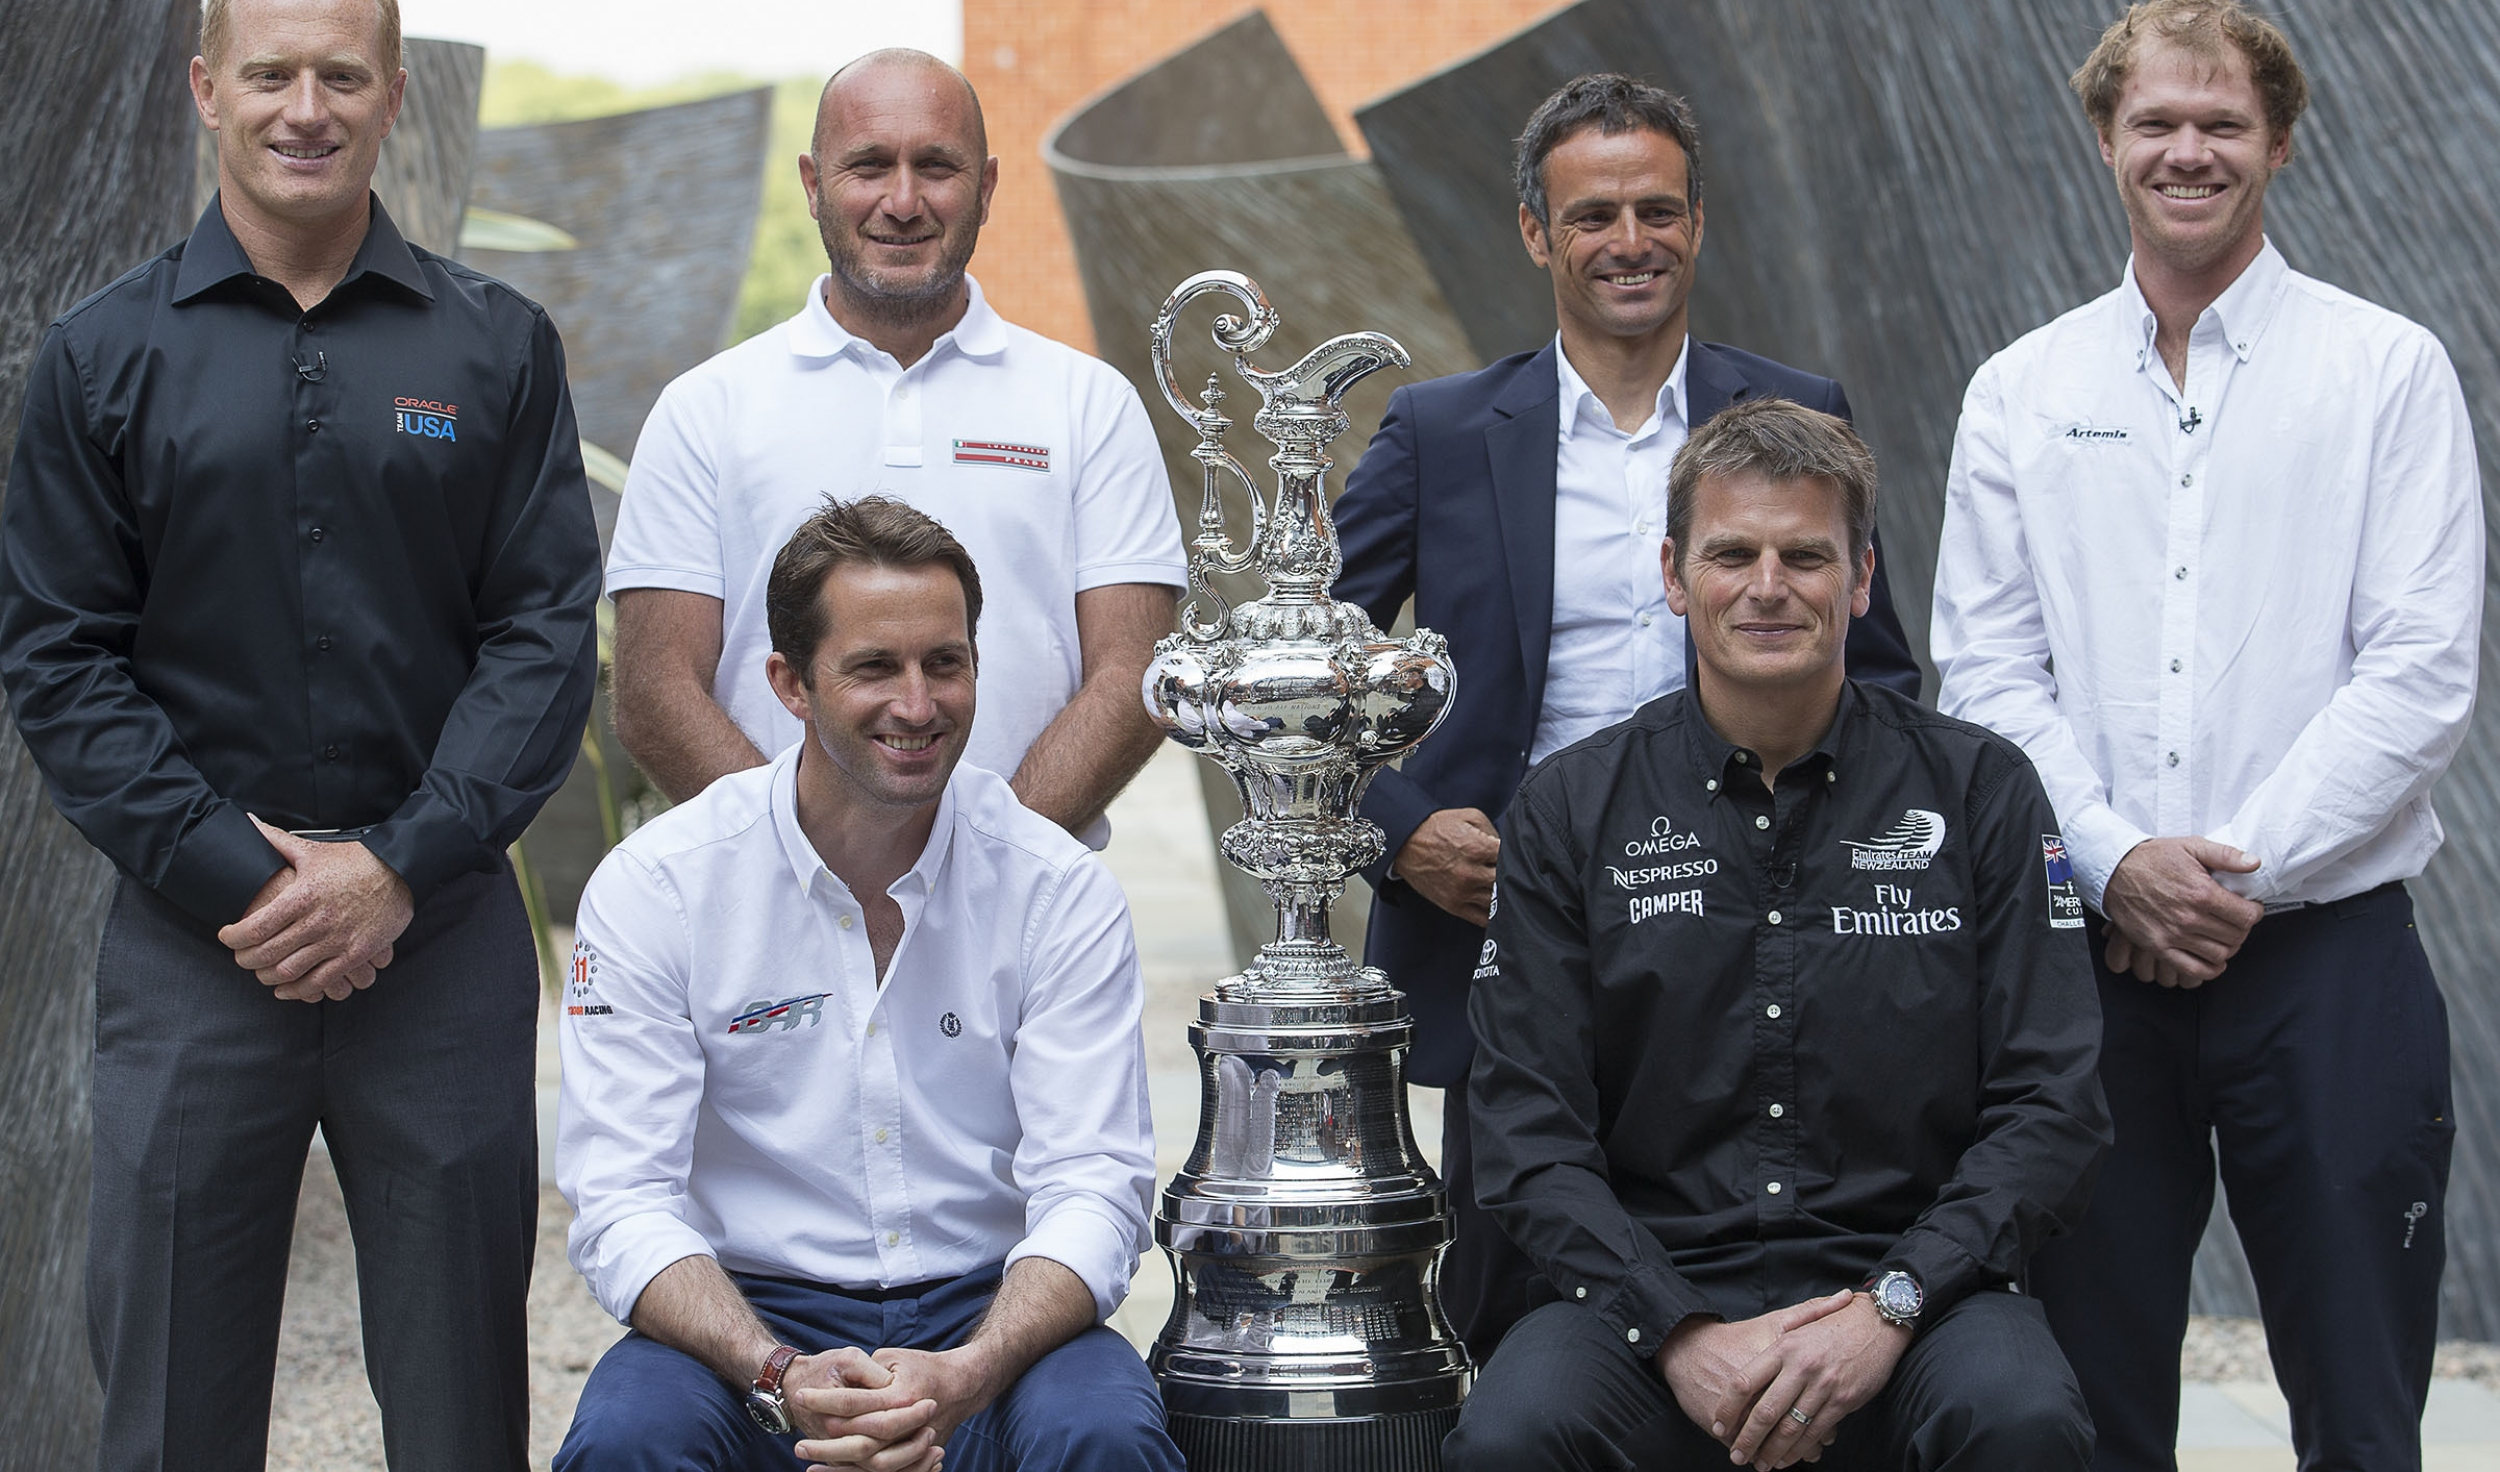 35th America's Cup, Skippers presentation press conference, London (UK), 09 Sept. 2014.James Spithill (ORACLE TEAM USA),  Max Sirena (Luna Rossa Challenge), Franck Cammas (Team France), Nathan Outteridge (Artemis Racing), Ben Ainslie (Ben Ainslie Racing),Dean Barker (Emirates Team New Zealand)